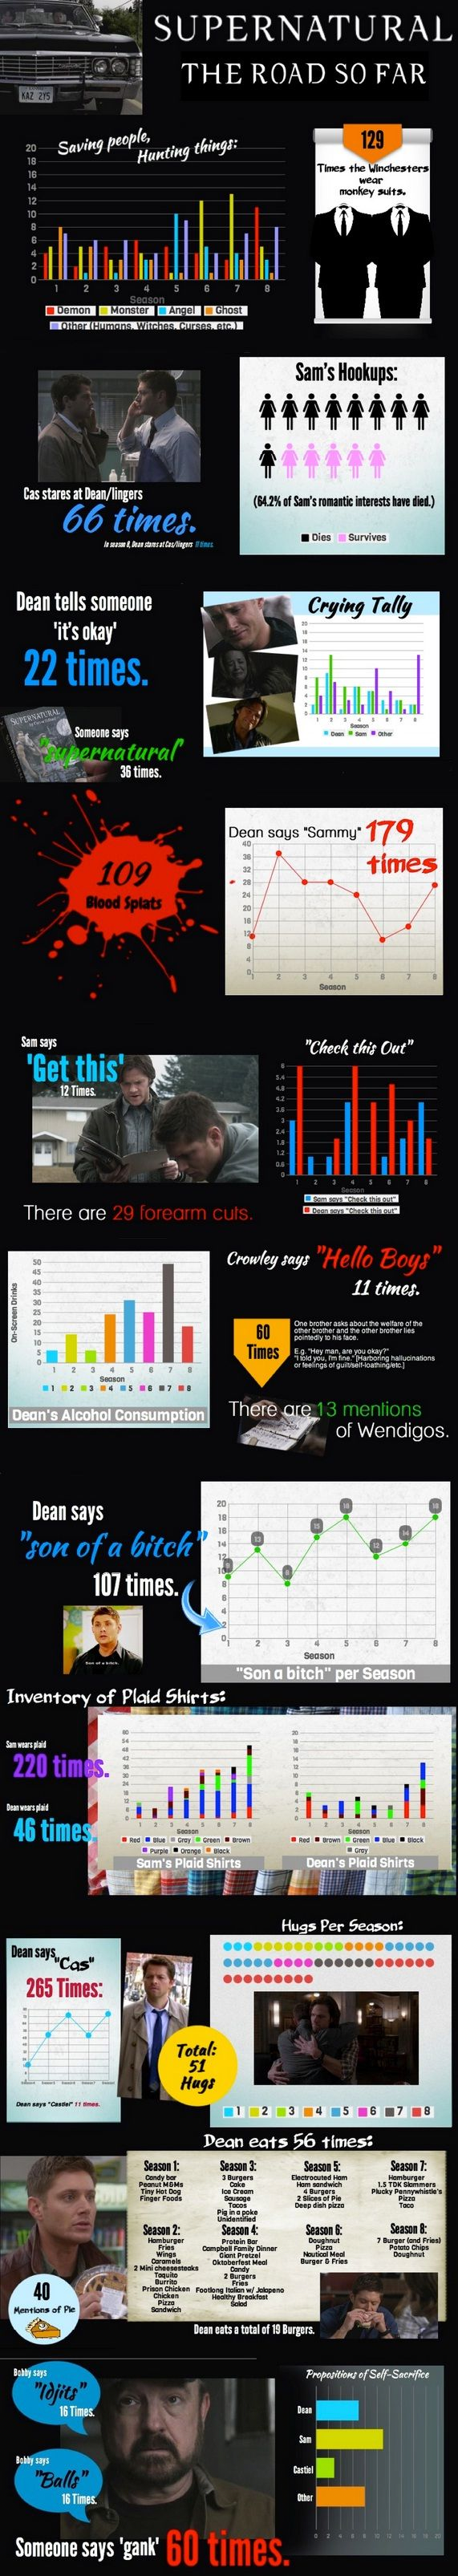 "Supernatural: ""The Road So Far"" stat chart for  seasons 1-8 >>> this is awesome.  This is literally so great!"